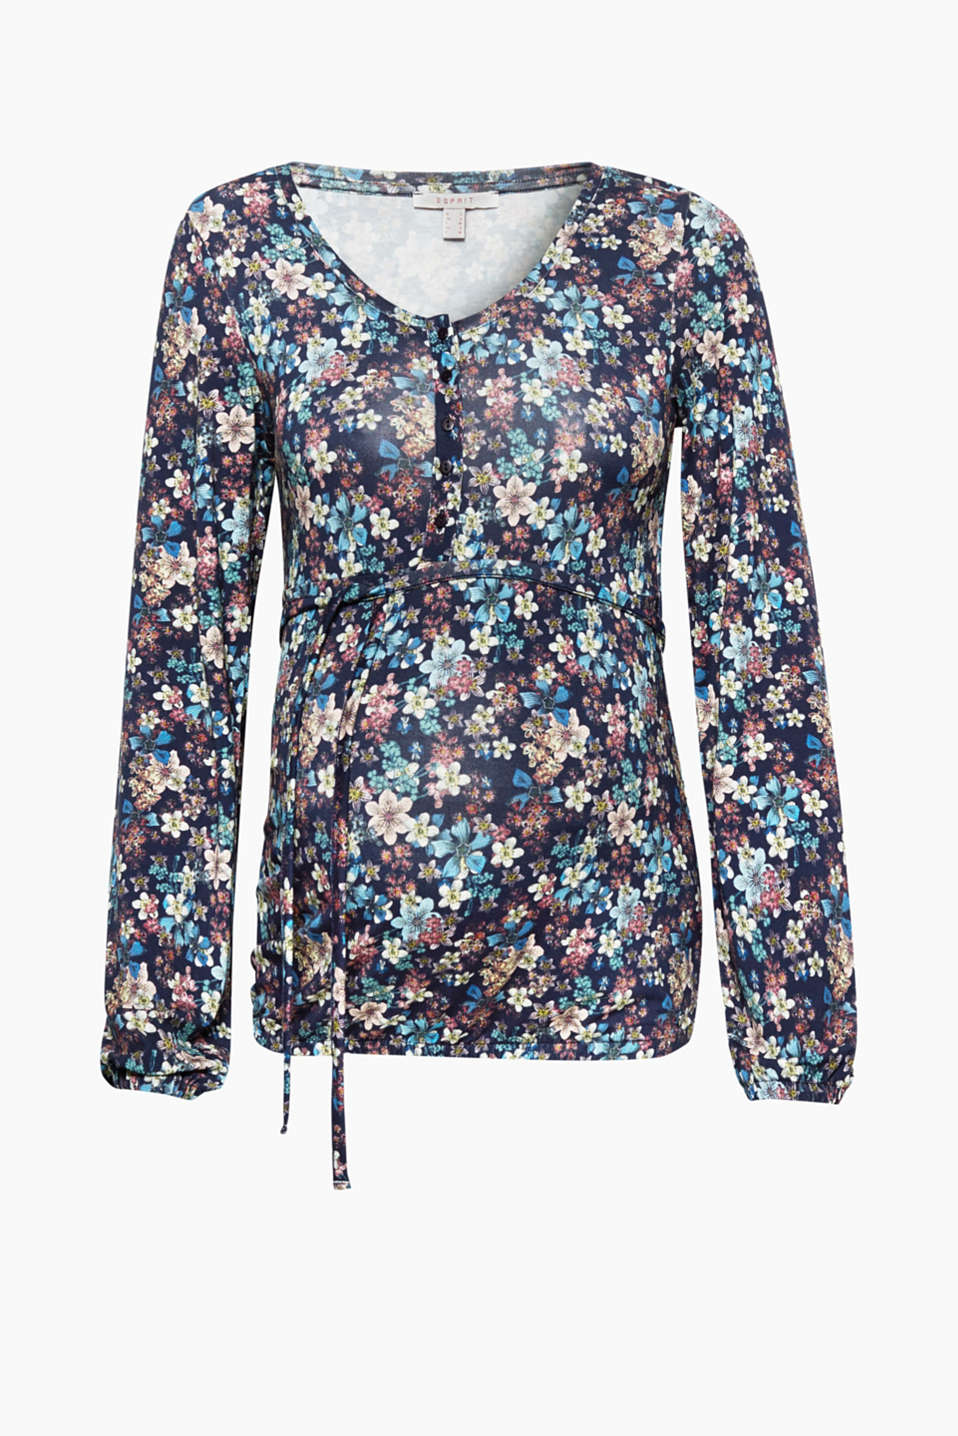 With a nursing function thanks to the built-in bodice in the front and long button placket: long sleeve top with a floral print